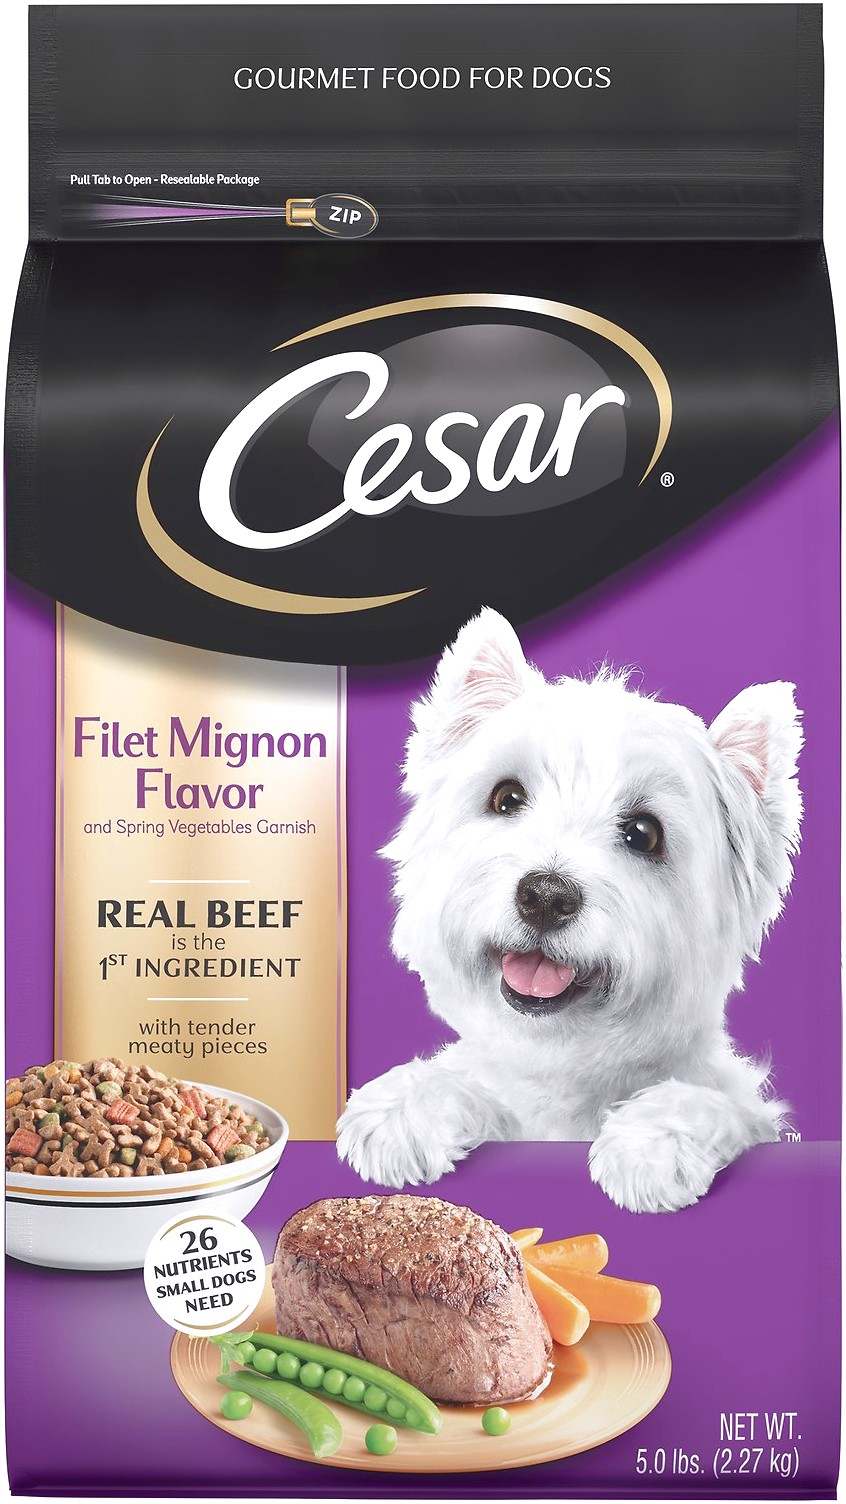 Little Caesars Dog Food